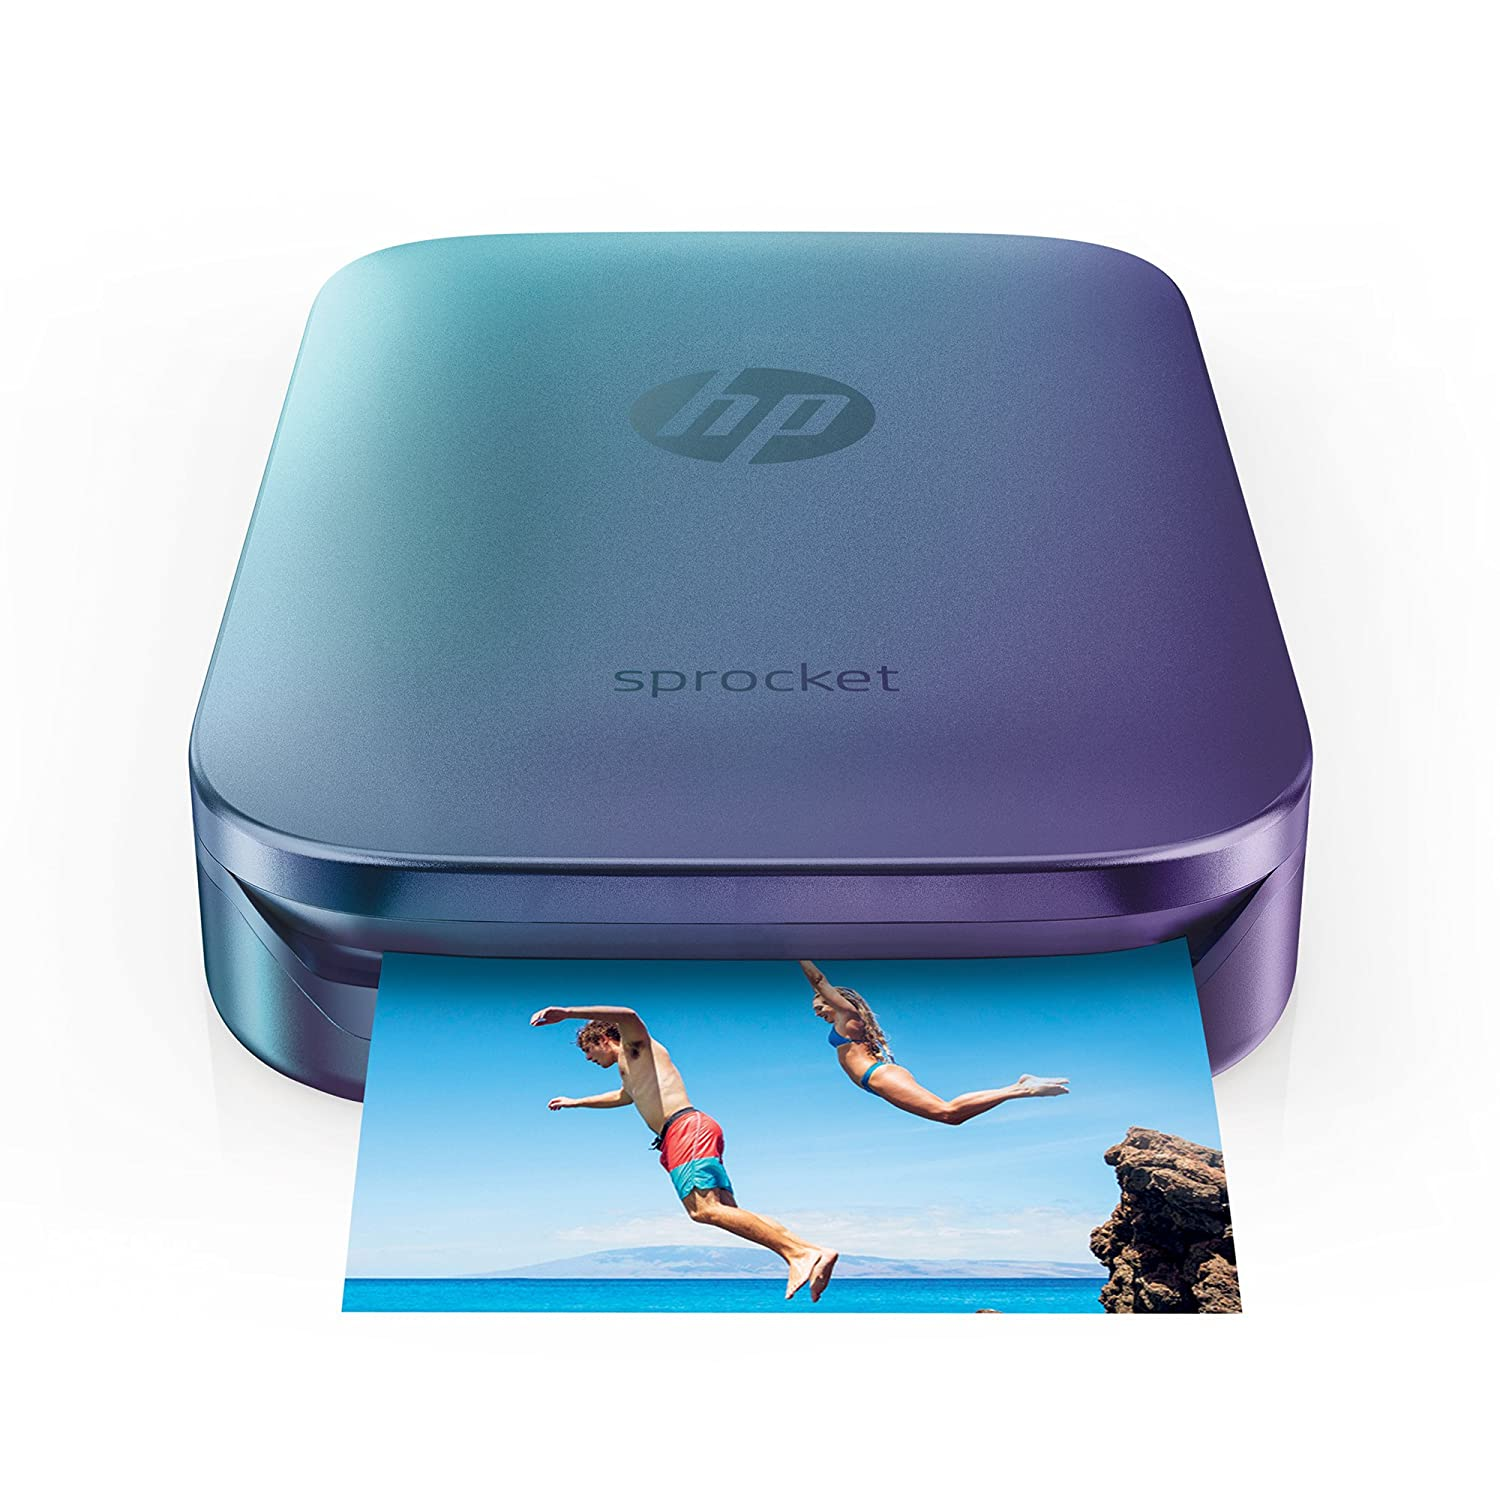 HP Sprocket Portable Photo Printer, Print Social Media Photos on 2x3 Sticky-Backed Paper - Blue (Z9L26A) Hewlett Packard